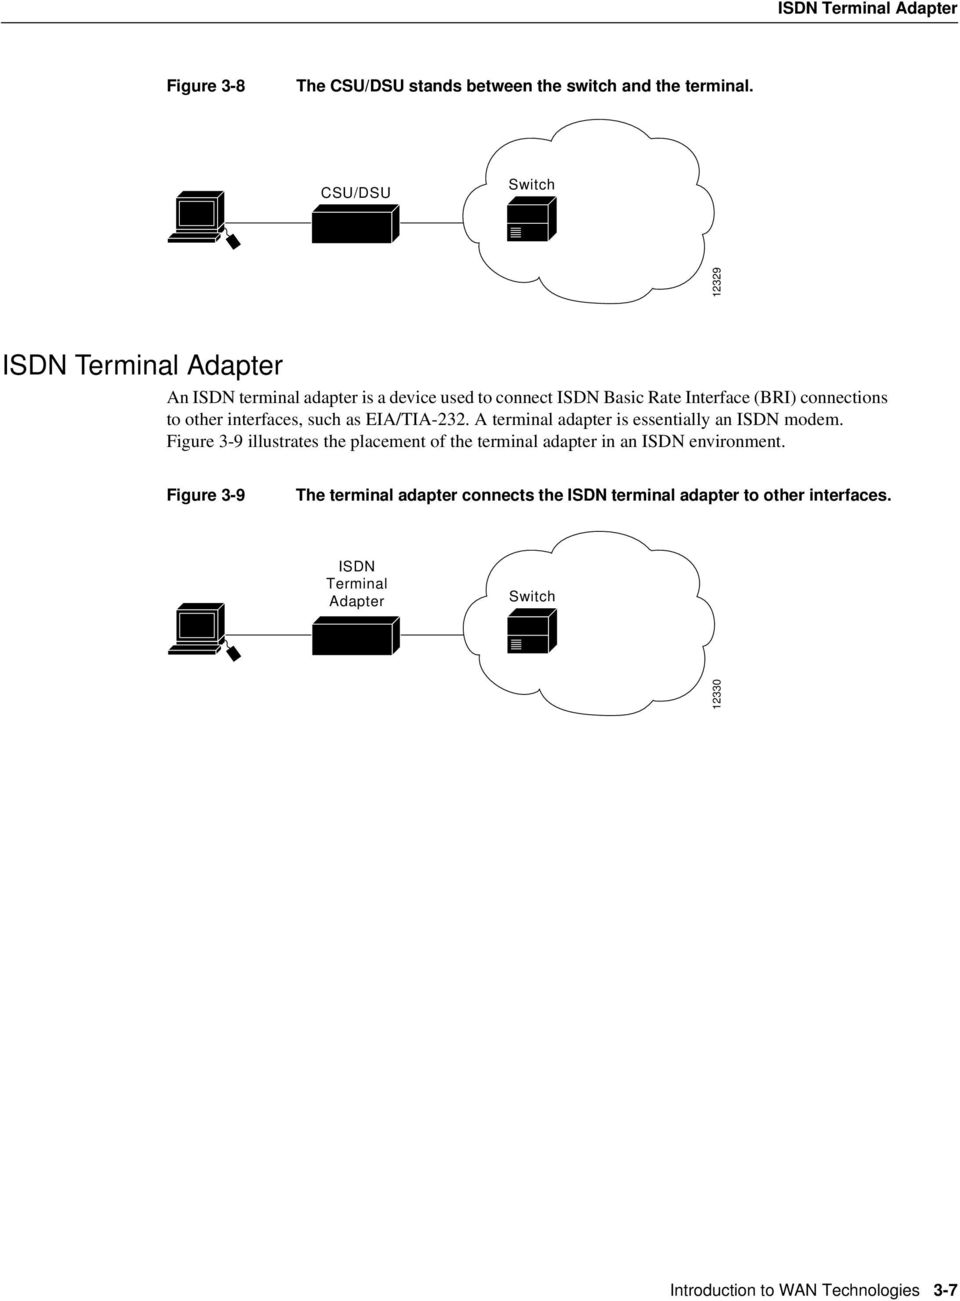 to other interfaces, such as EIA/TIA-232. A terminal adapter is essentially an ISDN modem.